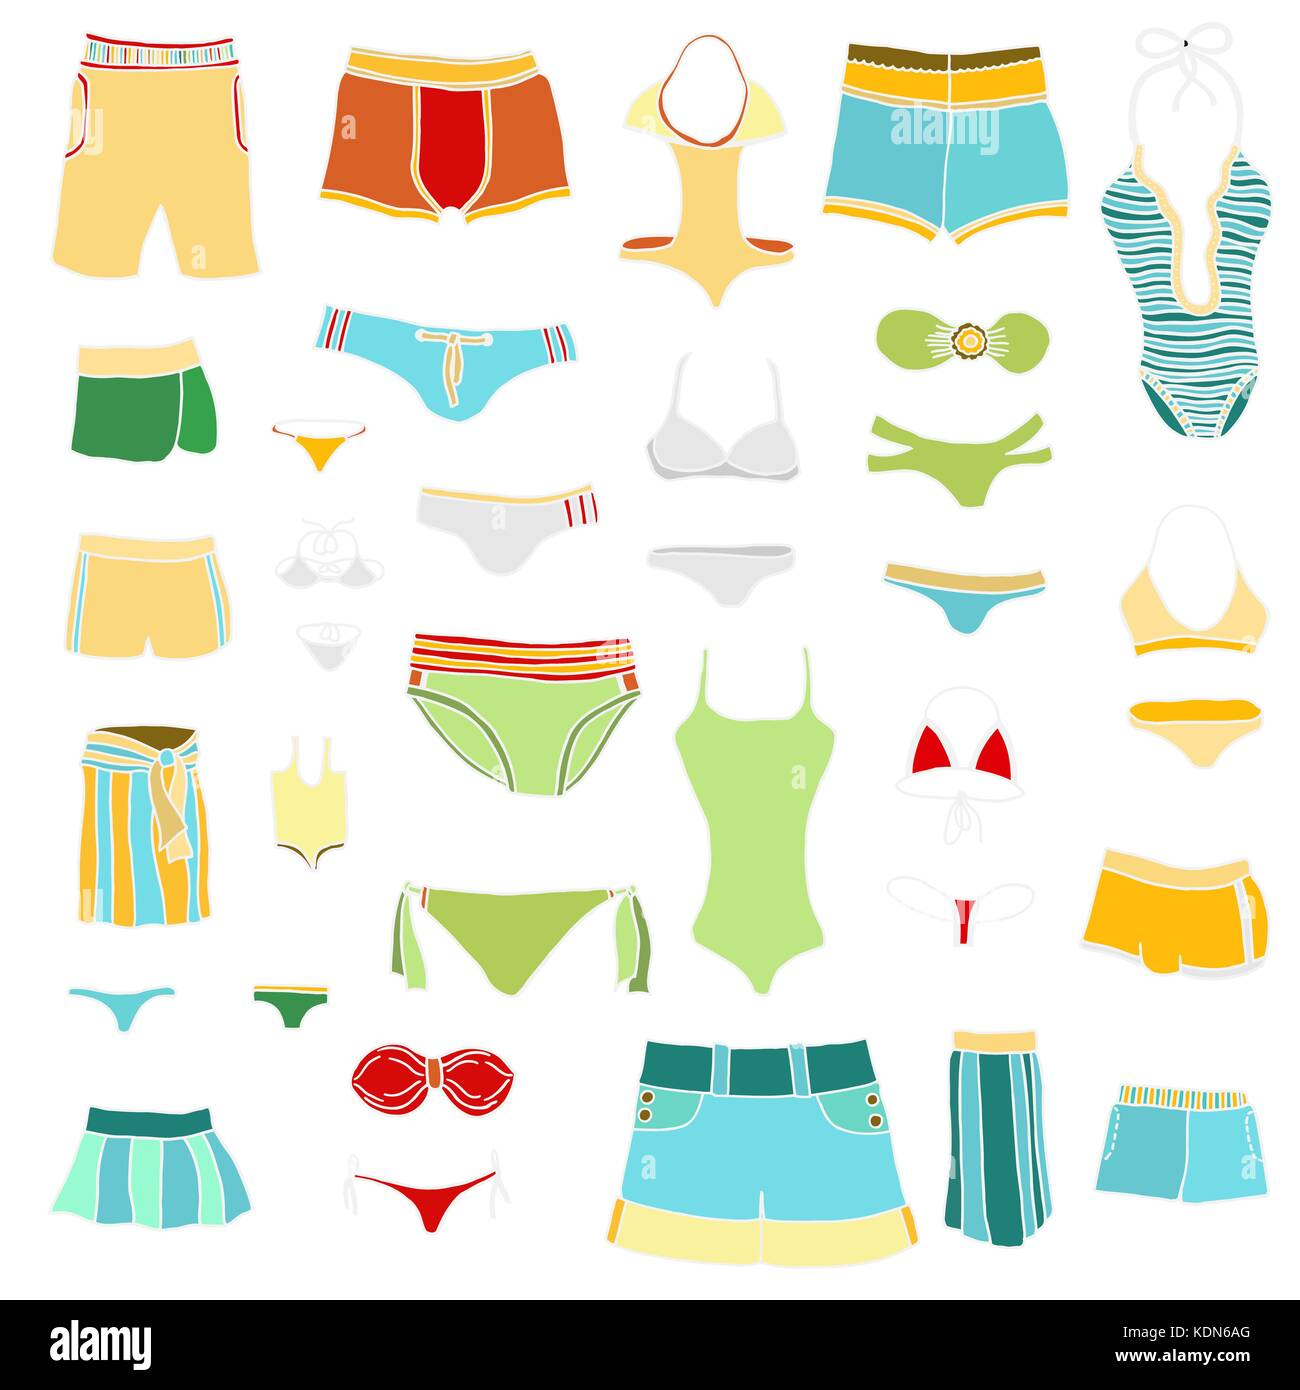 Set of summer clothing icons. Vector doodle illustration. - Stock Vector